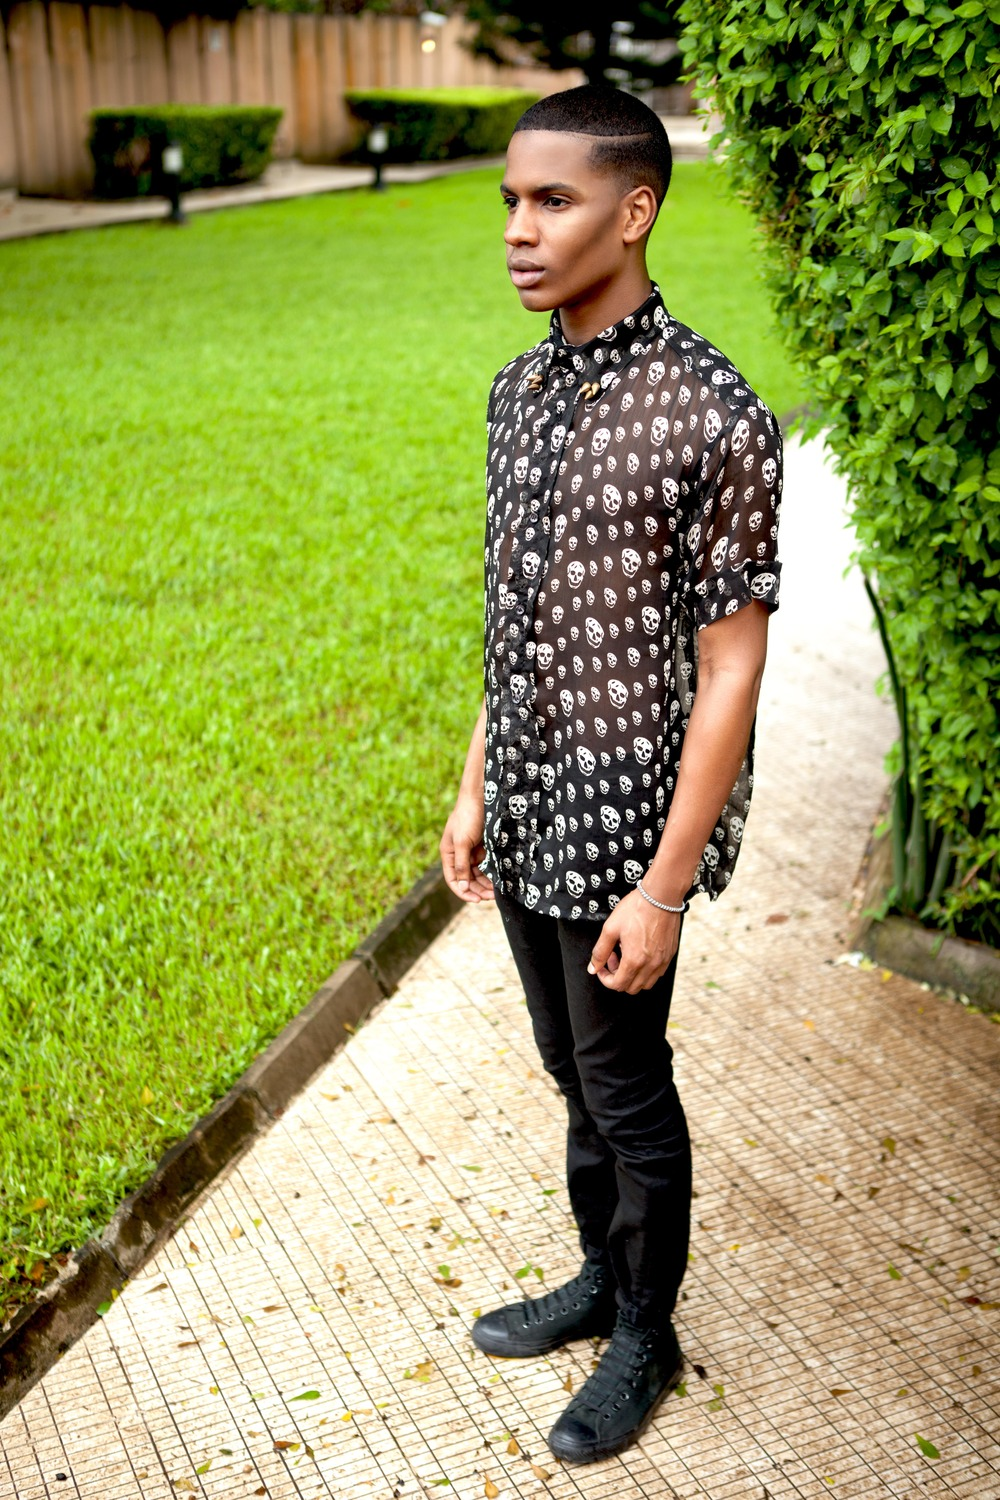 Shirt: House Of Nwocha